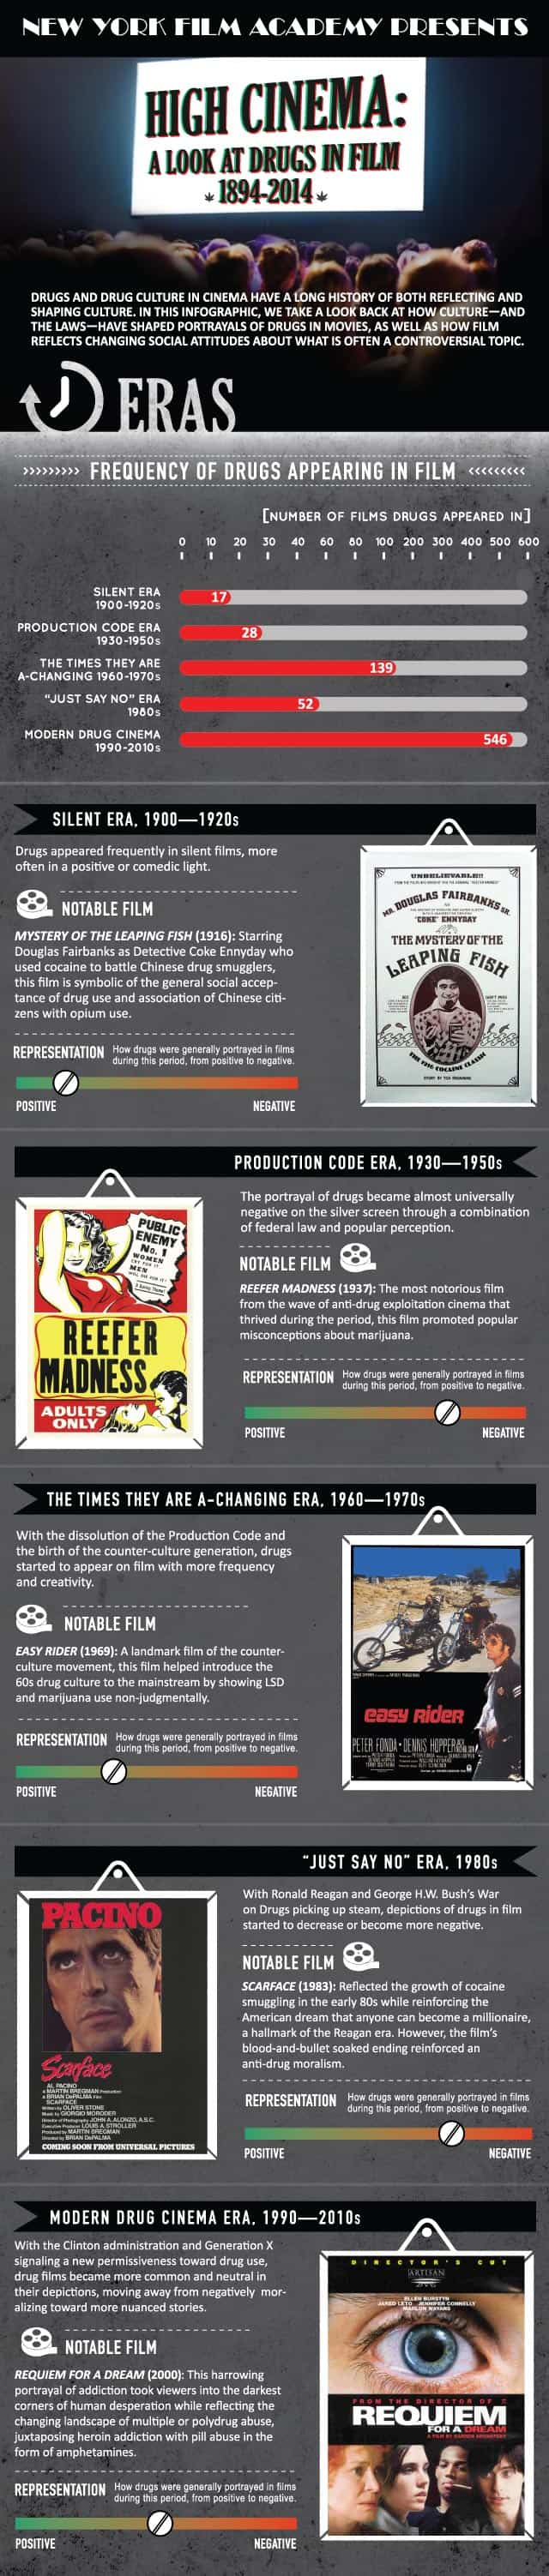 Infographic from New York Film Academy